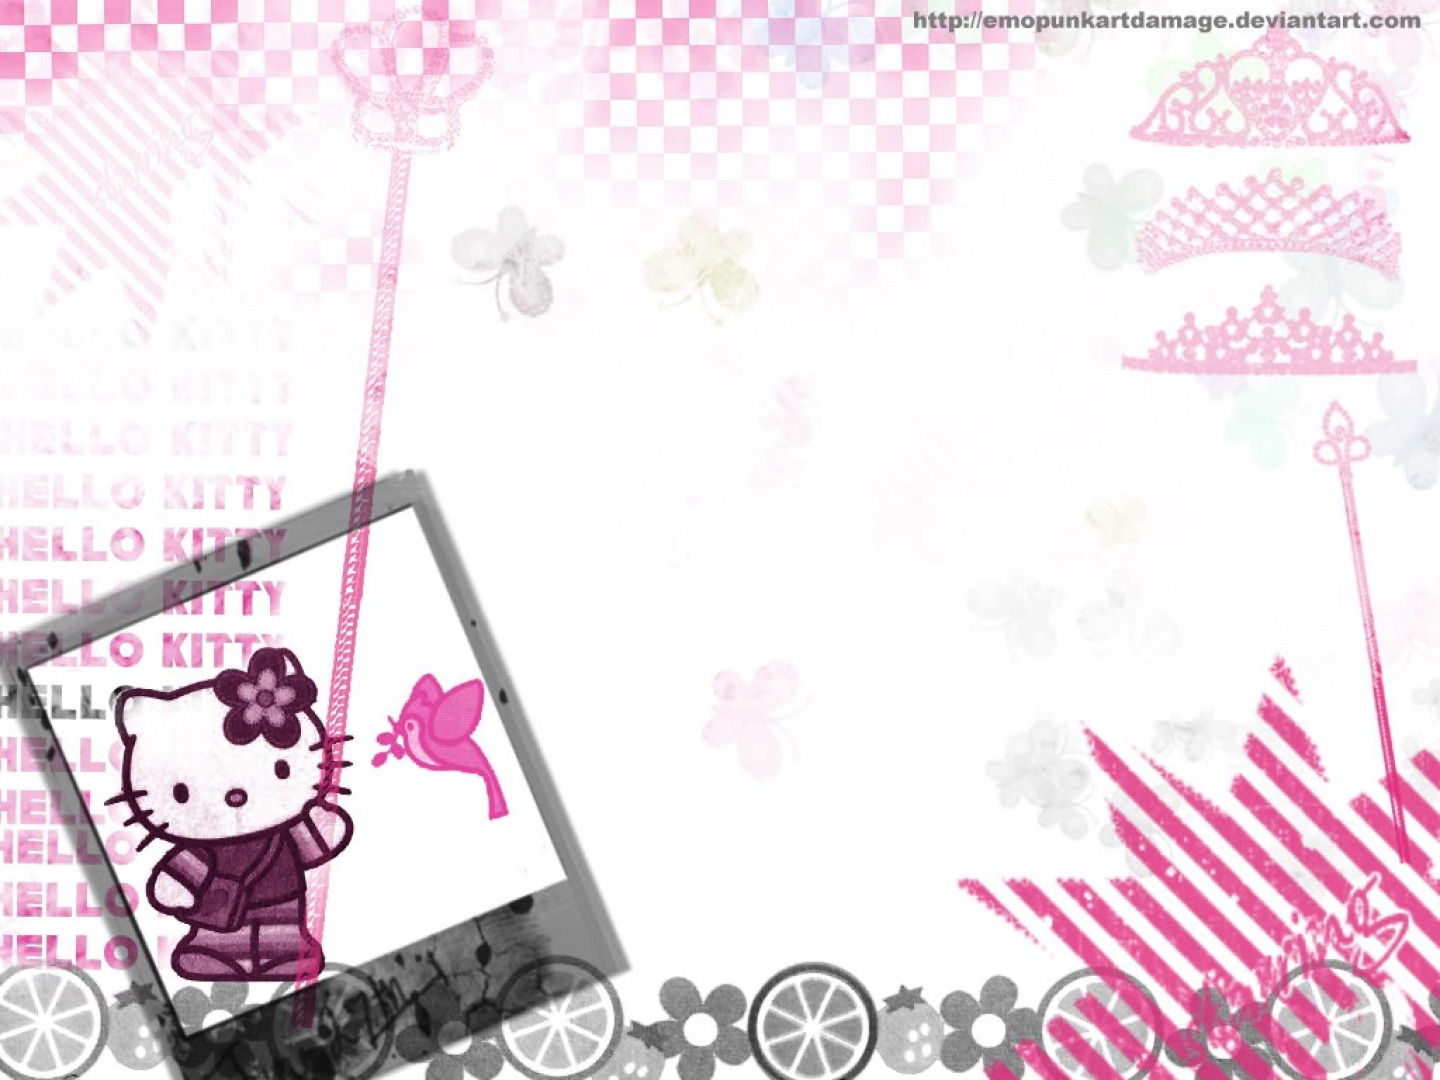 Best Wallpaper Hello Kitty Lenovo - 471875  2018_901979.jpg